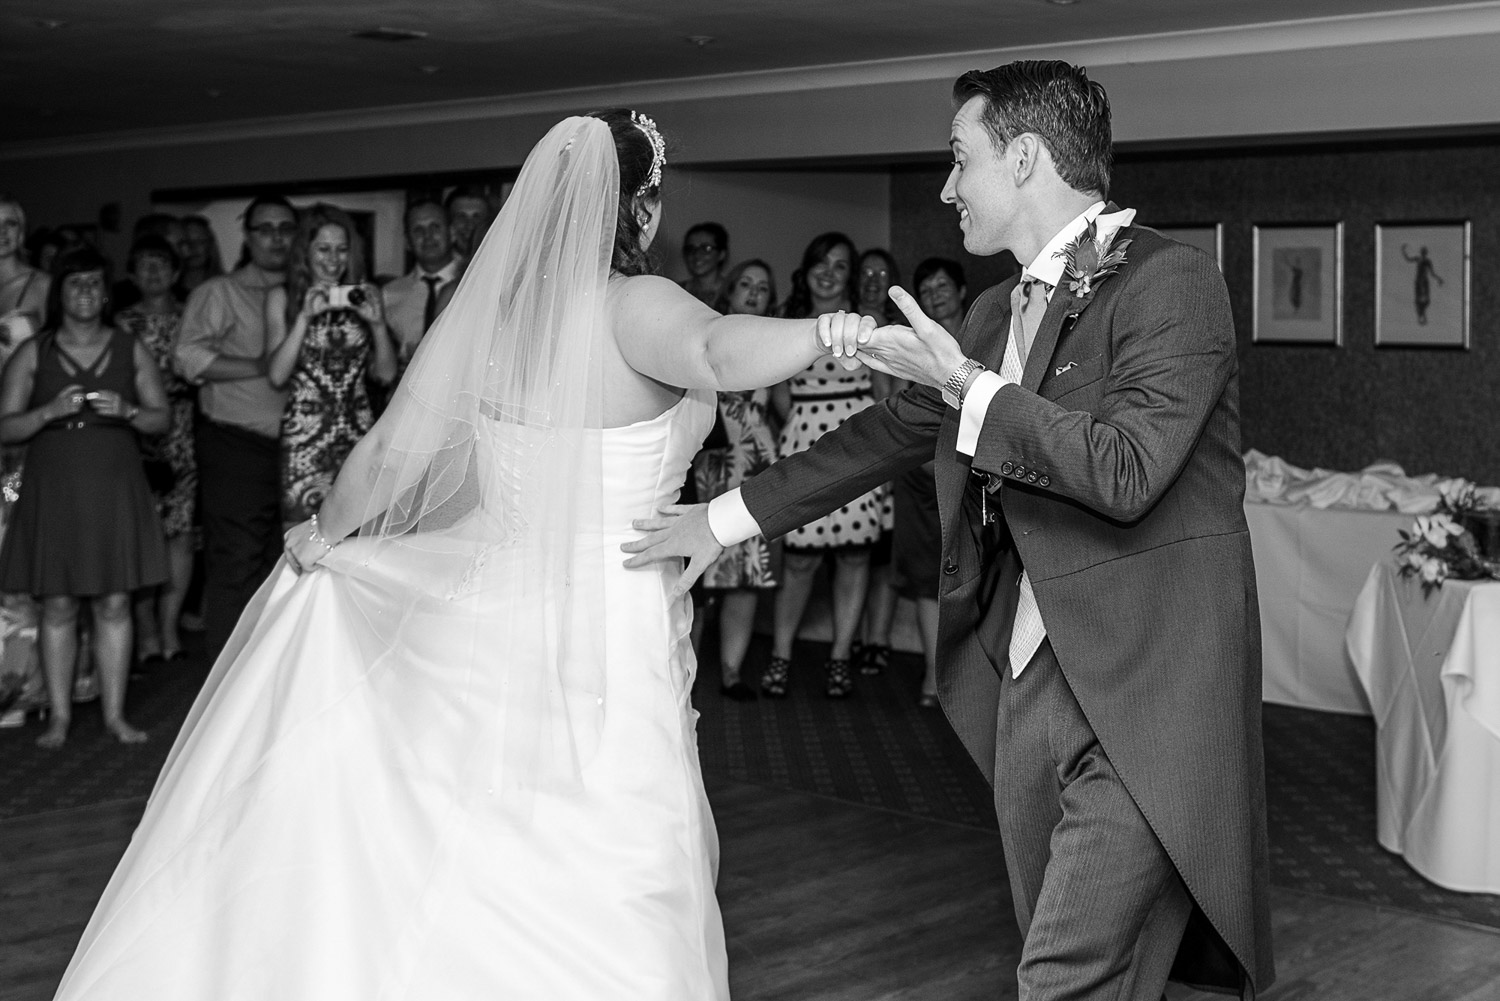 Copy of wedding photo of the first dance at the bridge hotel in wetherby